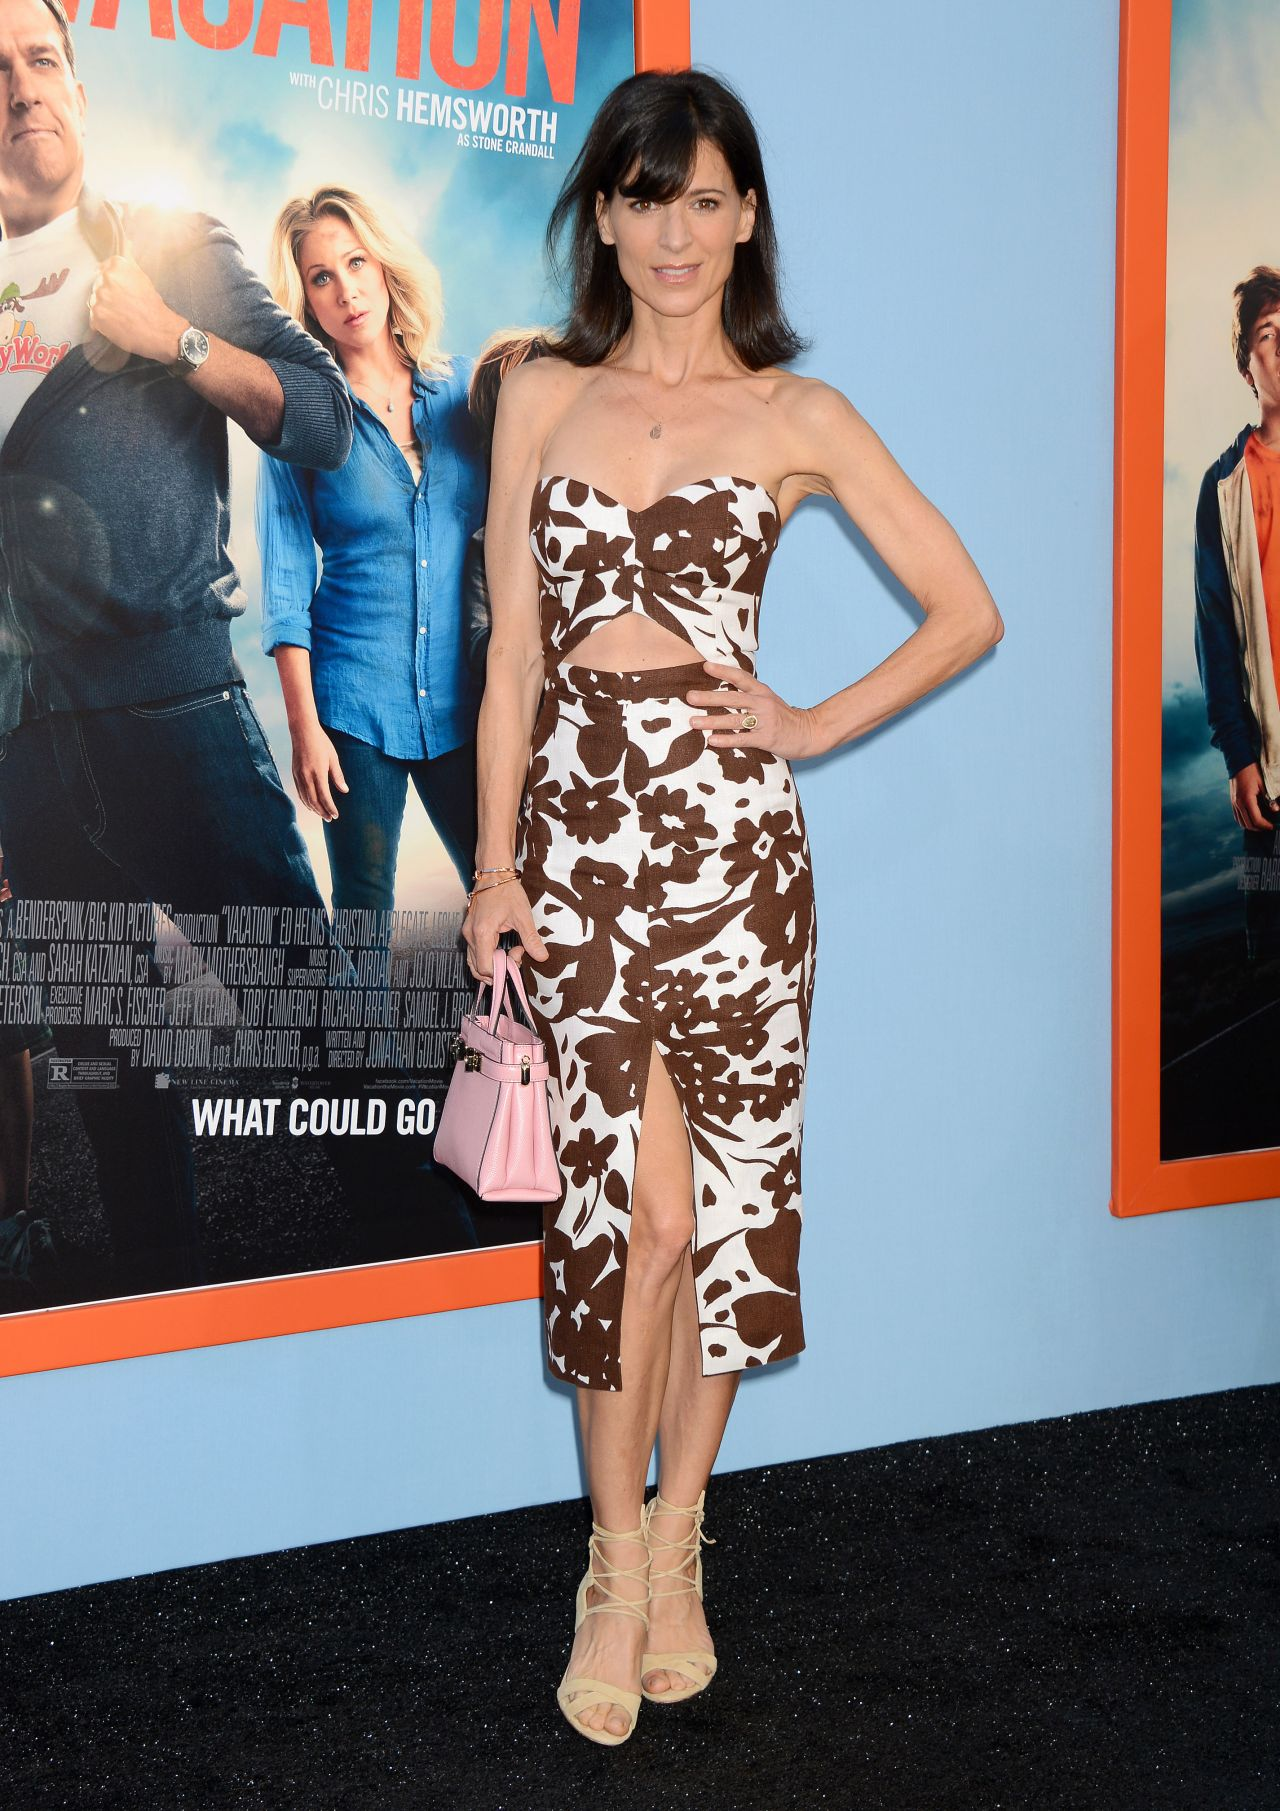 perrey-reeves-vacation-premiere-in-westwood_1